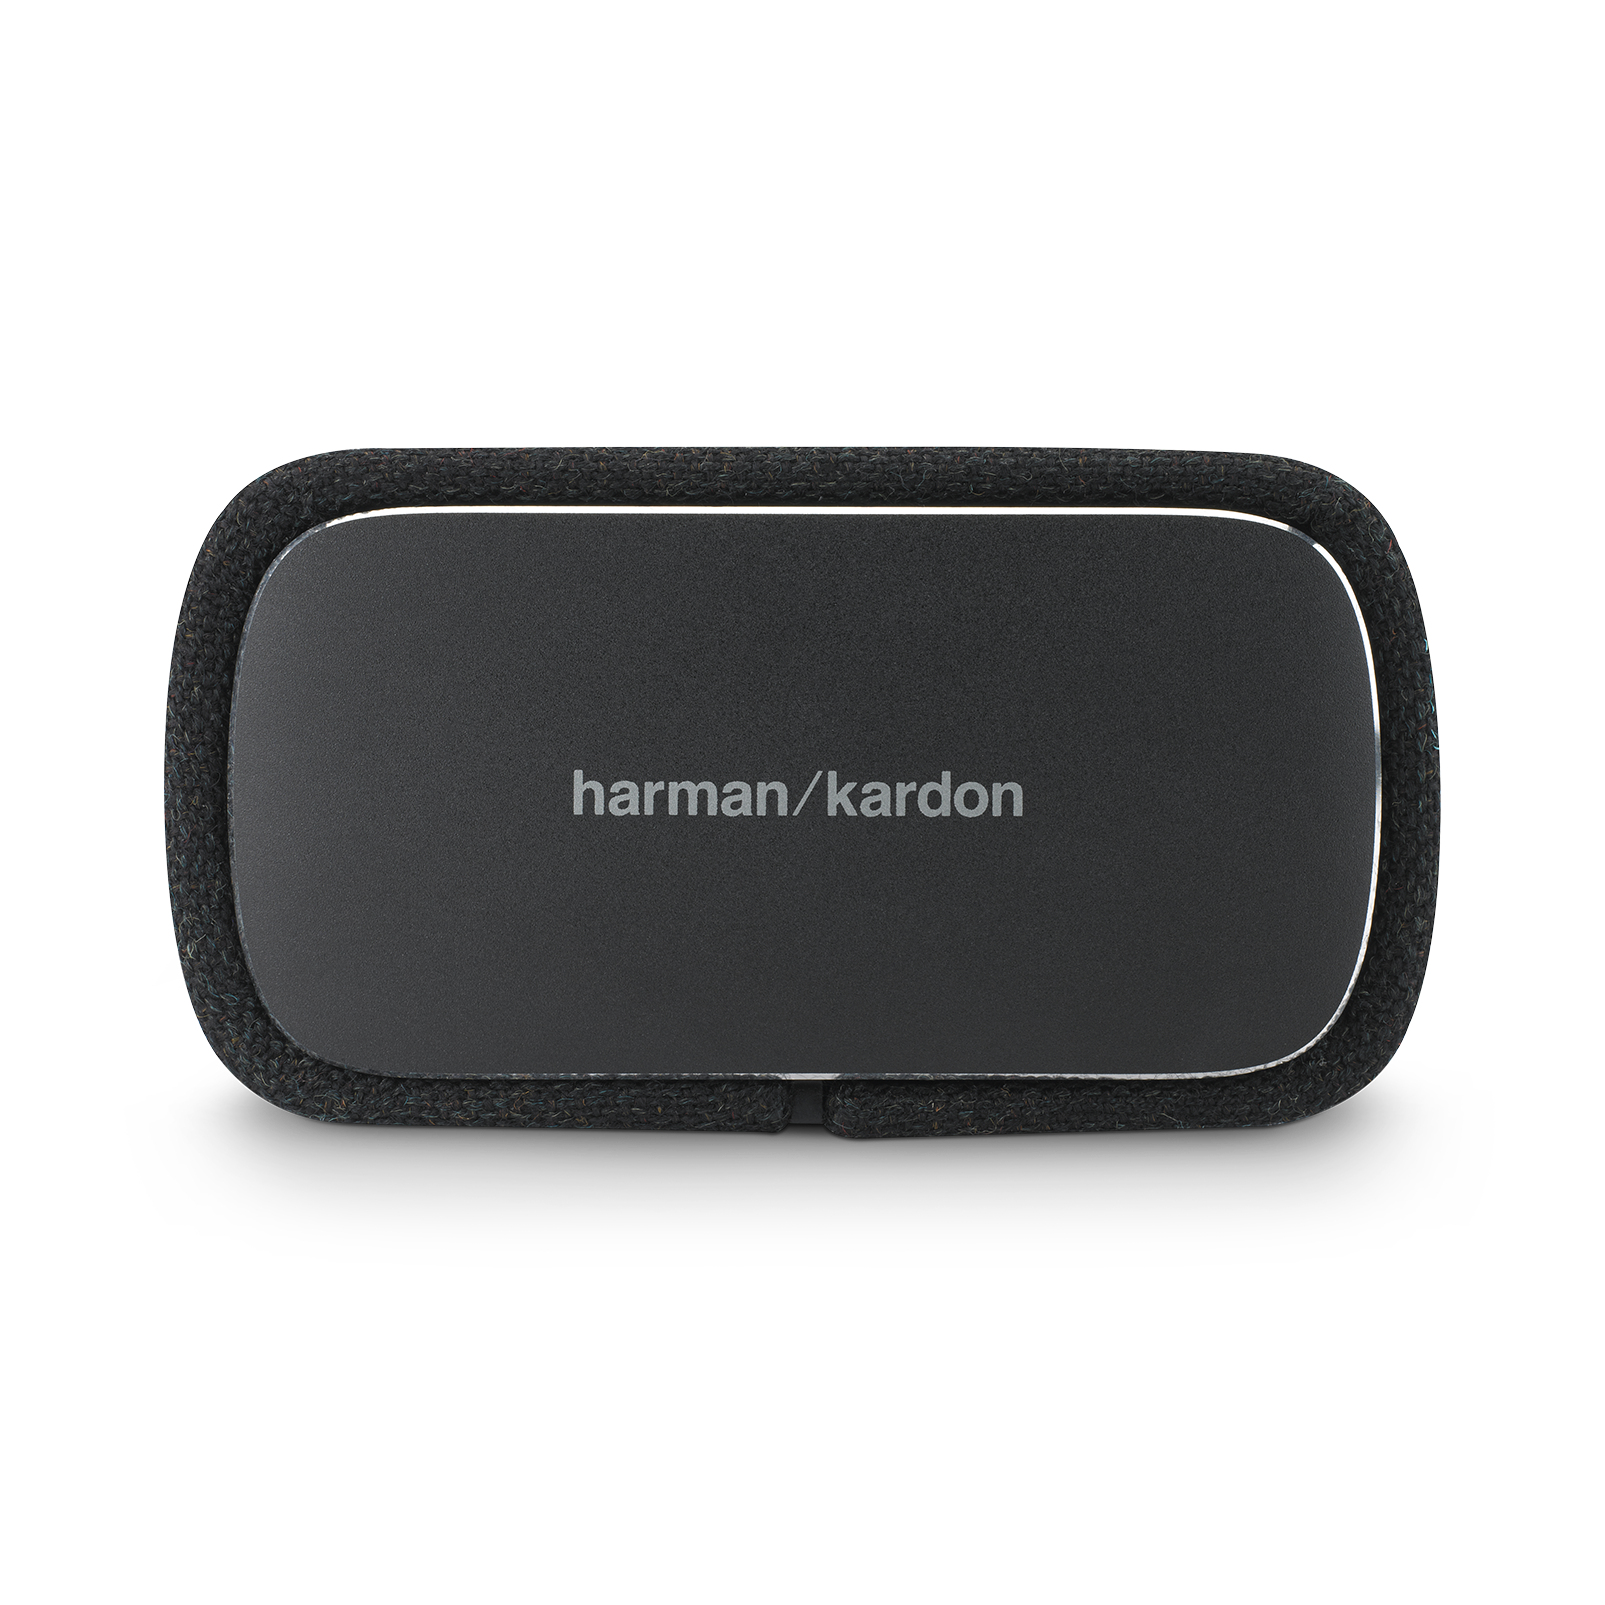 Harman Kardon Citation Bar - Black - The smartest soundbar for movies and music - Detailshot 3